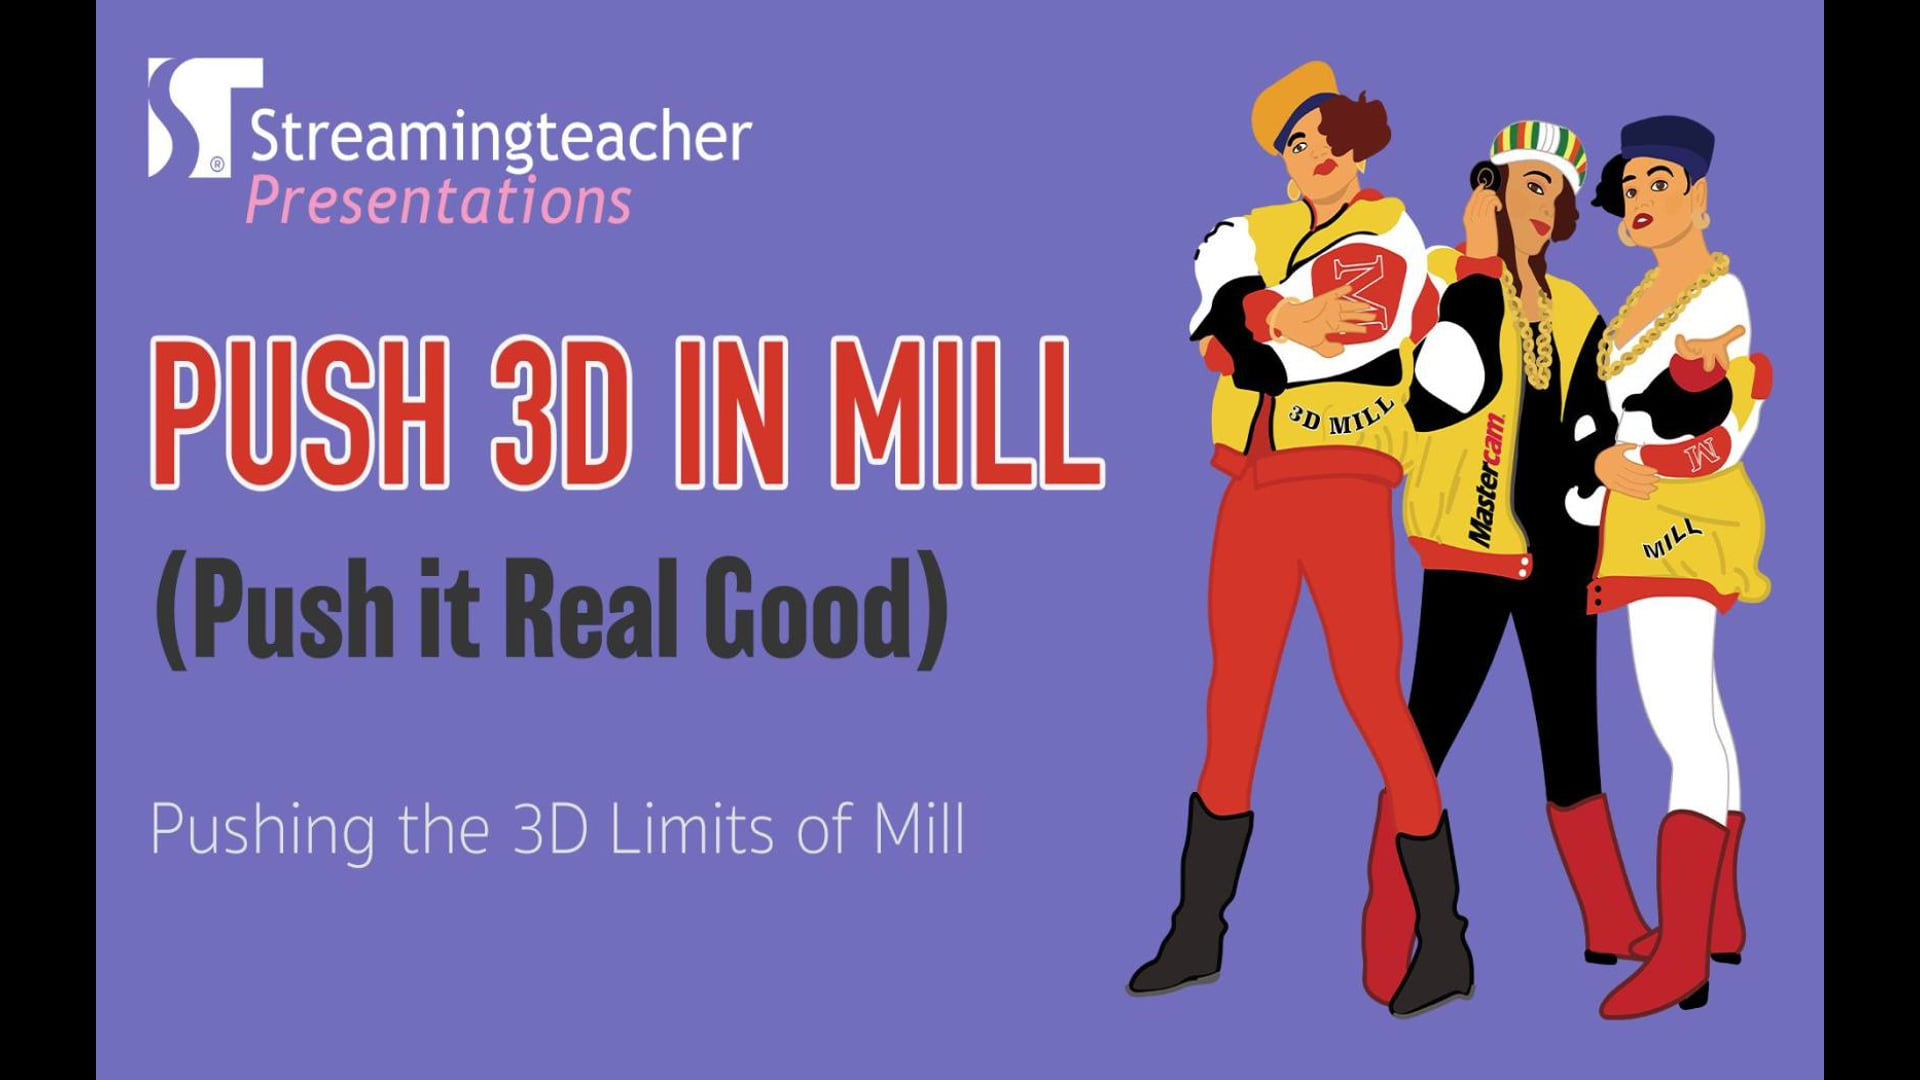 Pushing the 3D limits of Mill